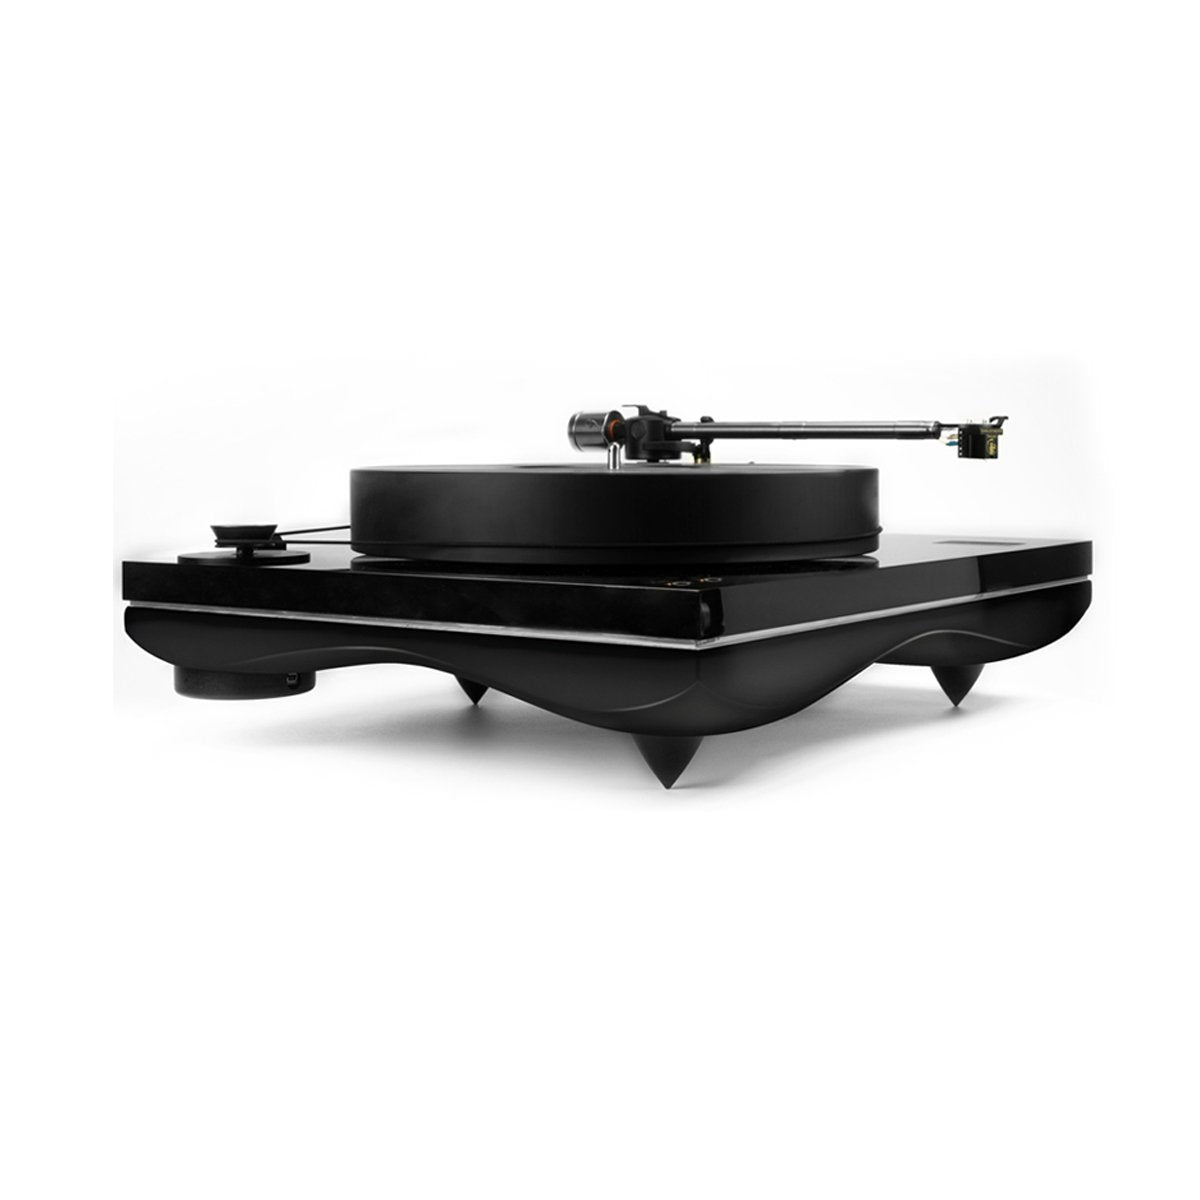 Gold Note Mediterraneo Turntable with Gold Leaf Finish